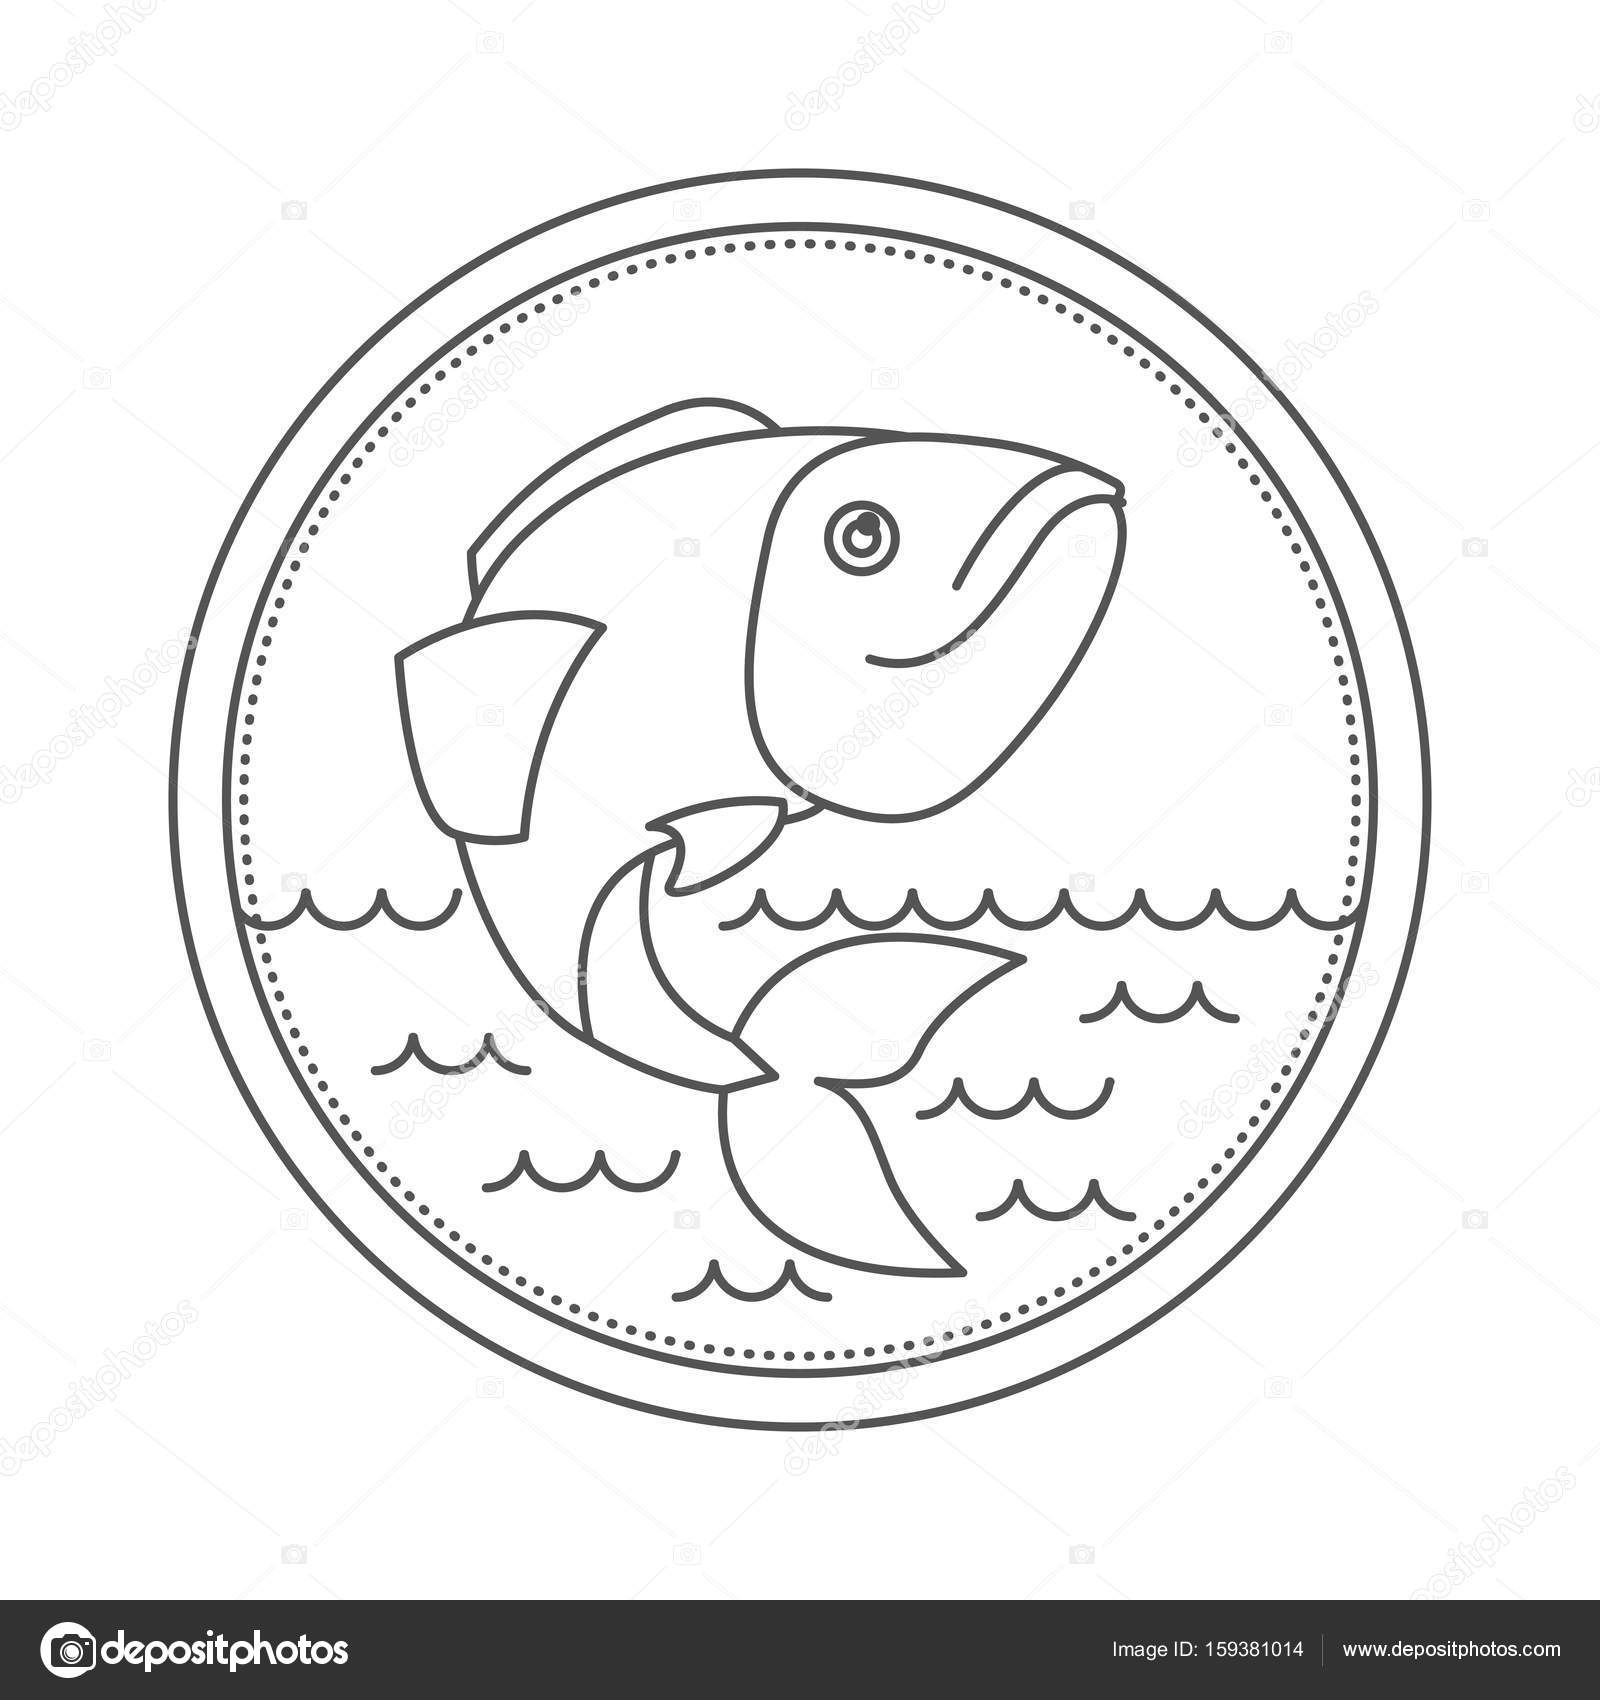 1600x1700 Sketch Silhouette Of Circular Emblem With Waves Of Sea